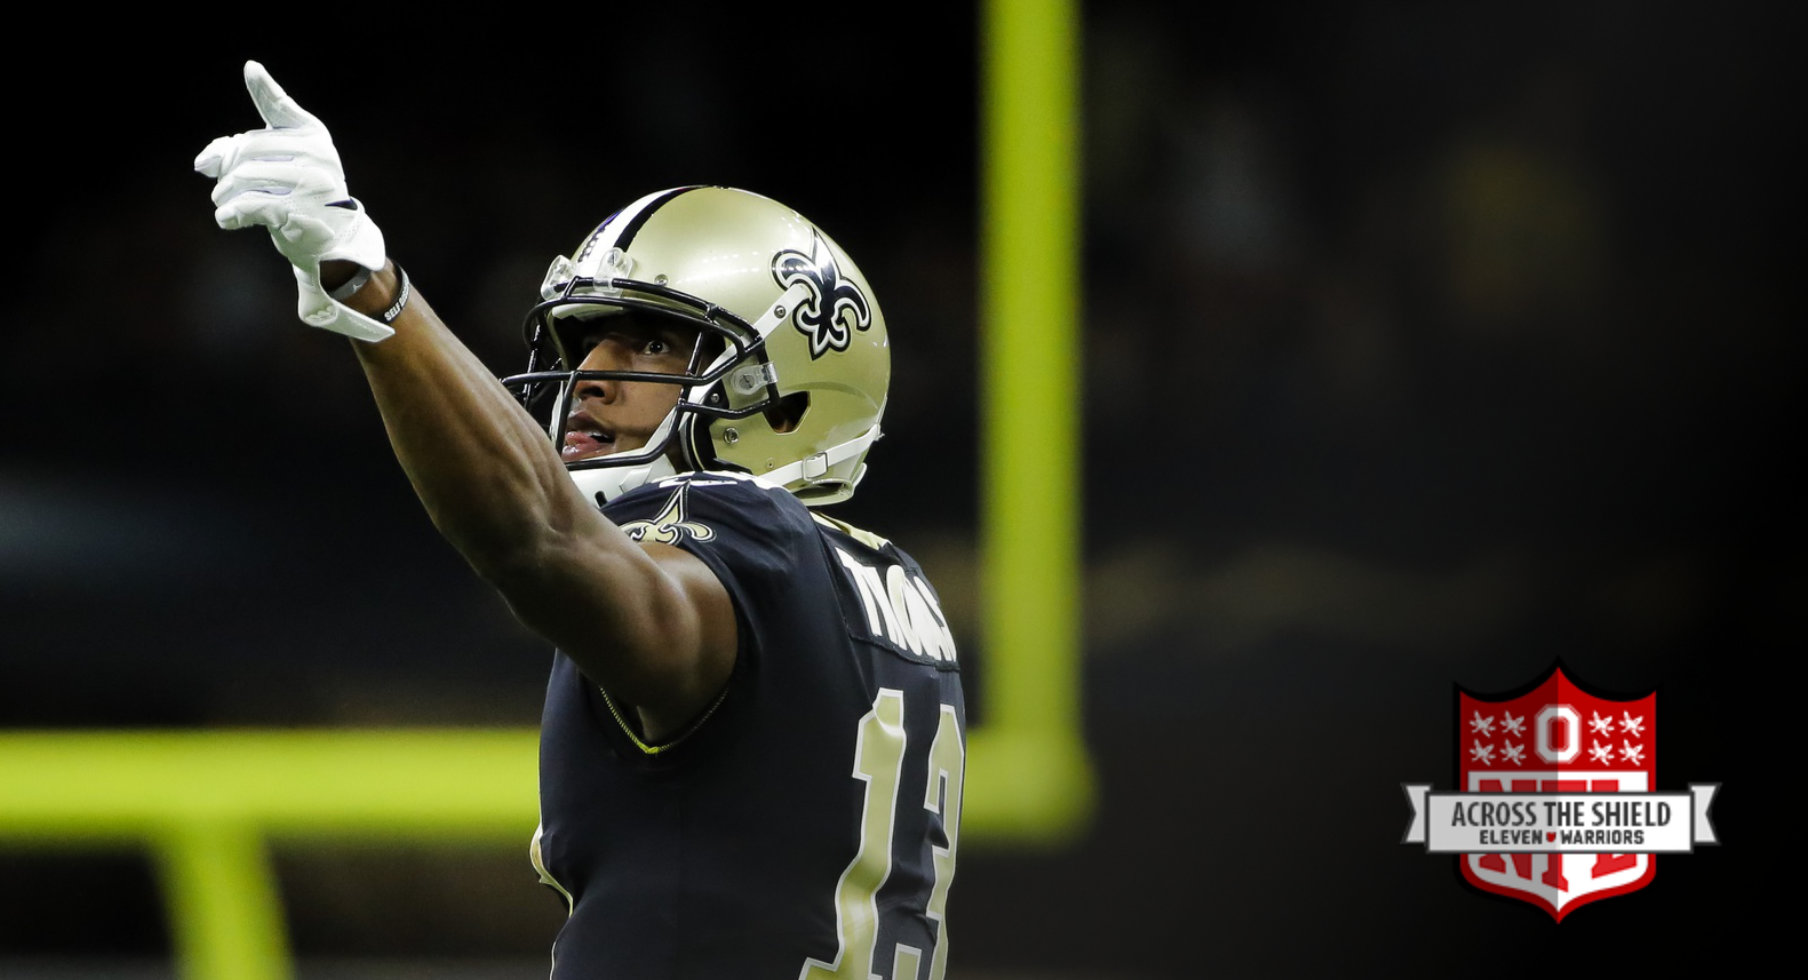 Across the Shield: Michael Thomas Shows Why He Can't Be Guarded and Jamarco Jones Shines in His First Start at Guard Against the League's Best